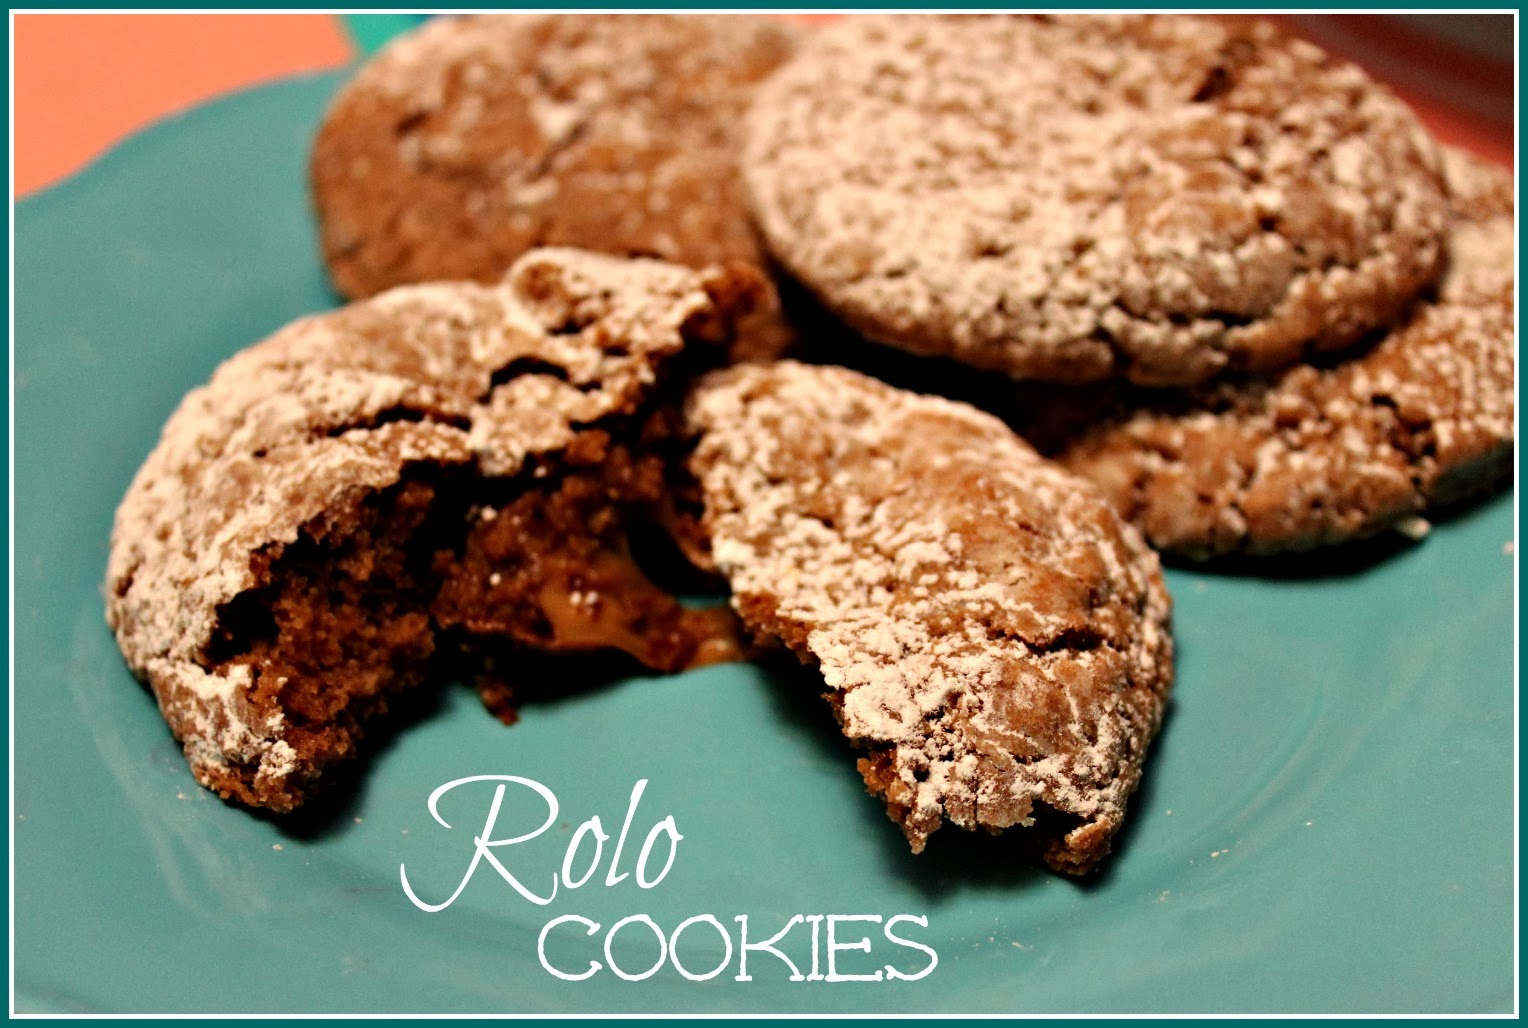 Rolo Cookies!